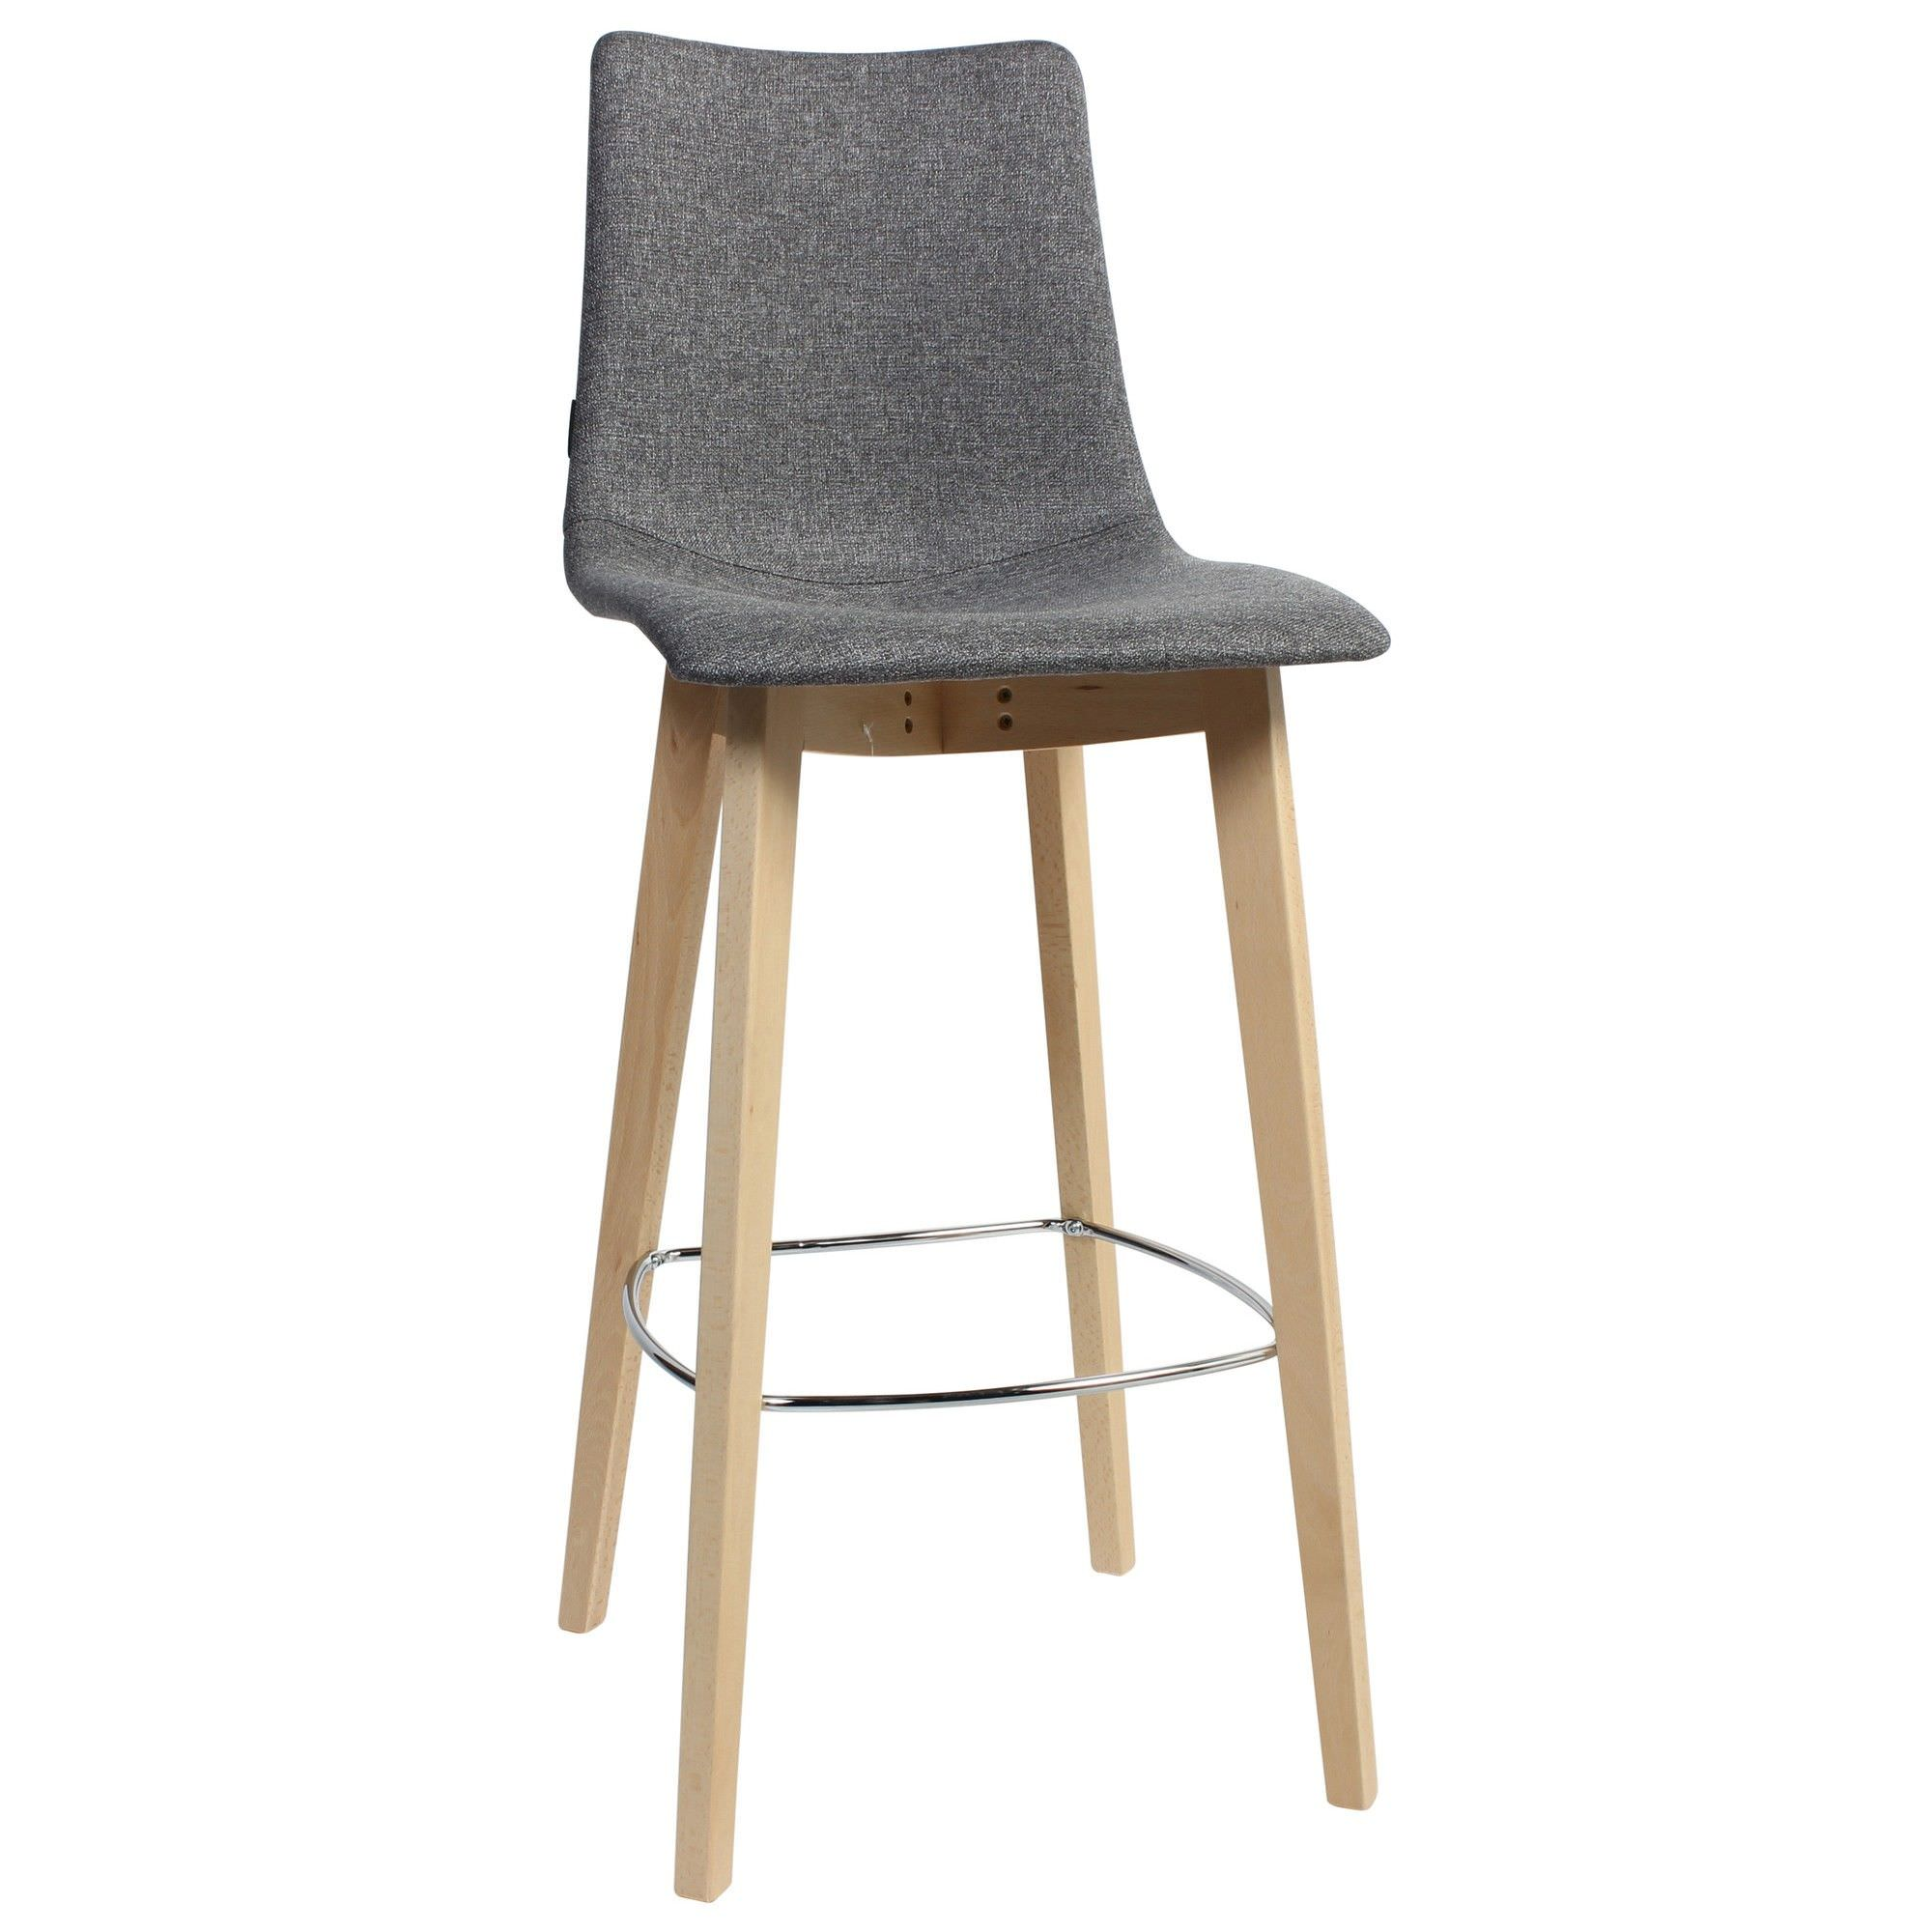 Zebra Pop Italian Made Commercial Grade Fabric Bar Stool, Timber Leg, Grey / Natural